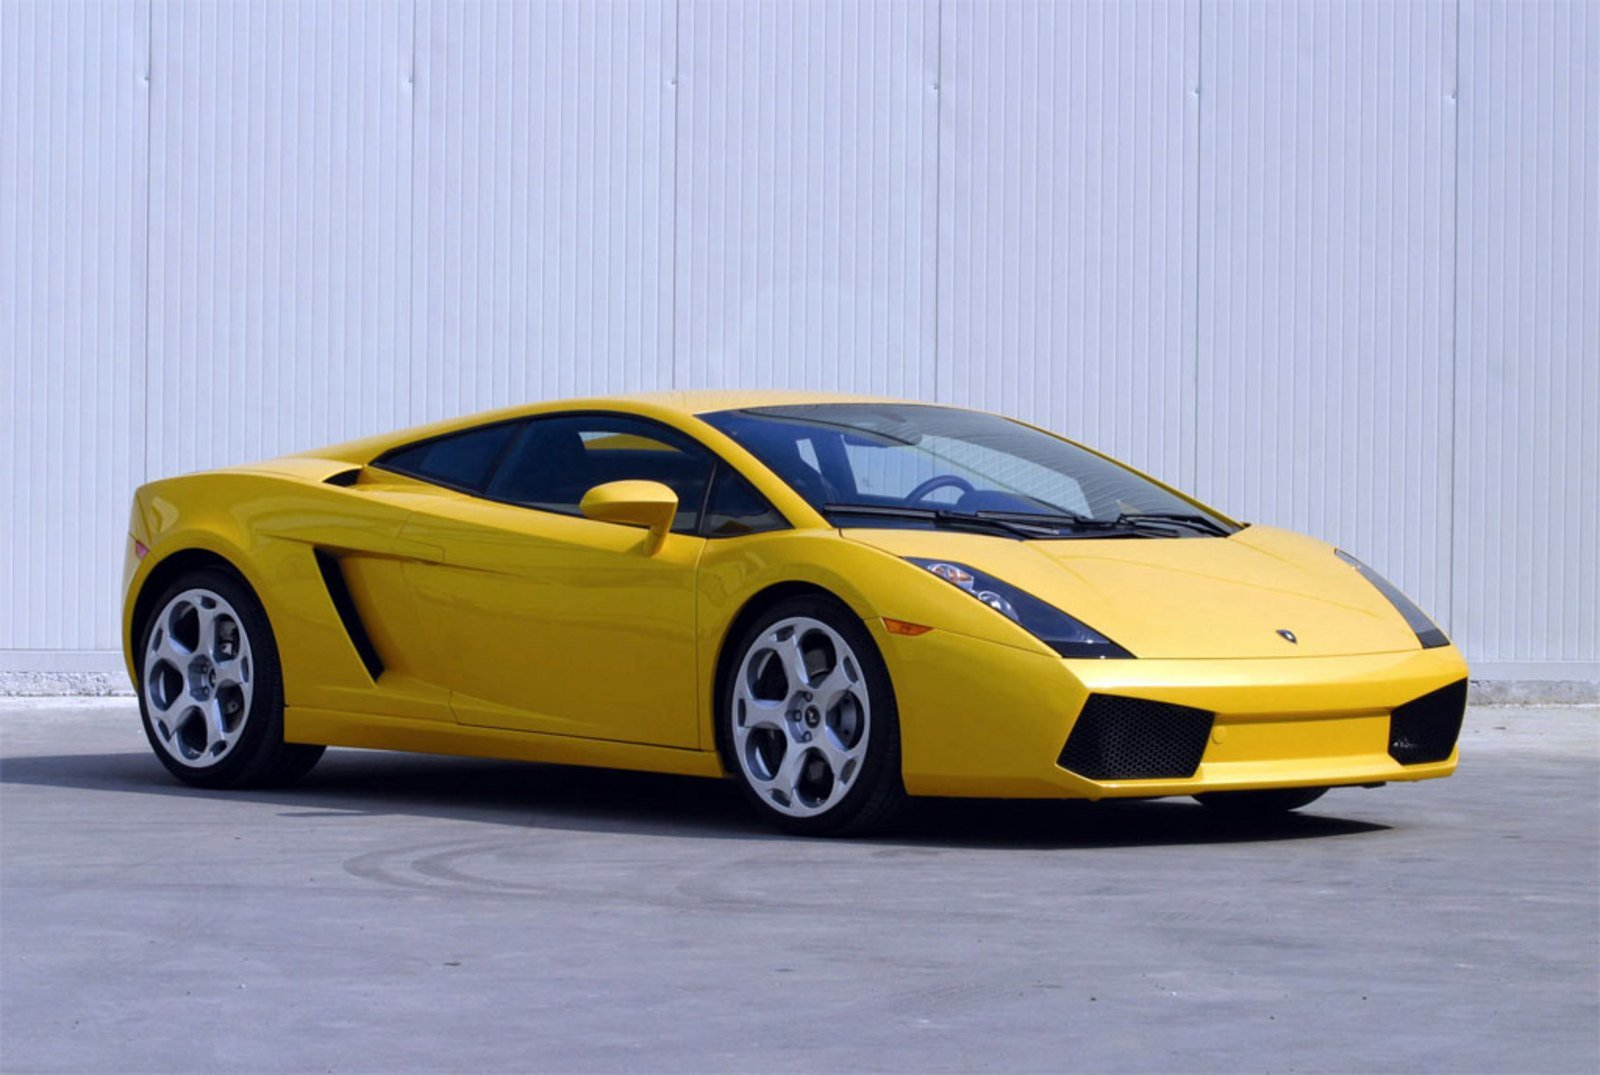 Lamborghini Murcielago I Restyling 2006 2010 Coupe Outstanding Cars